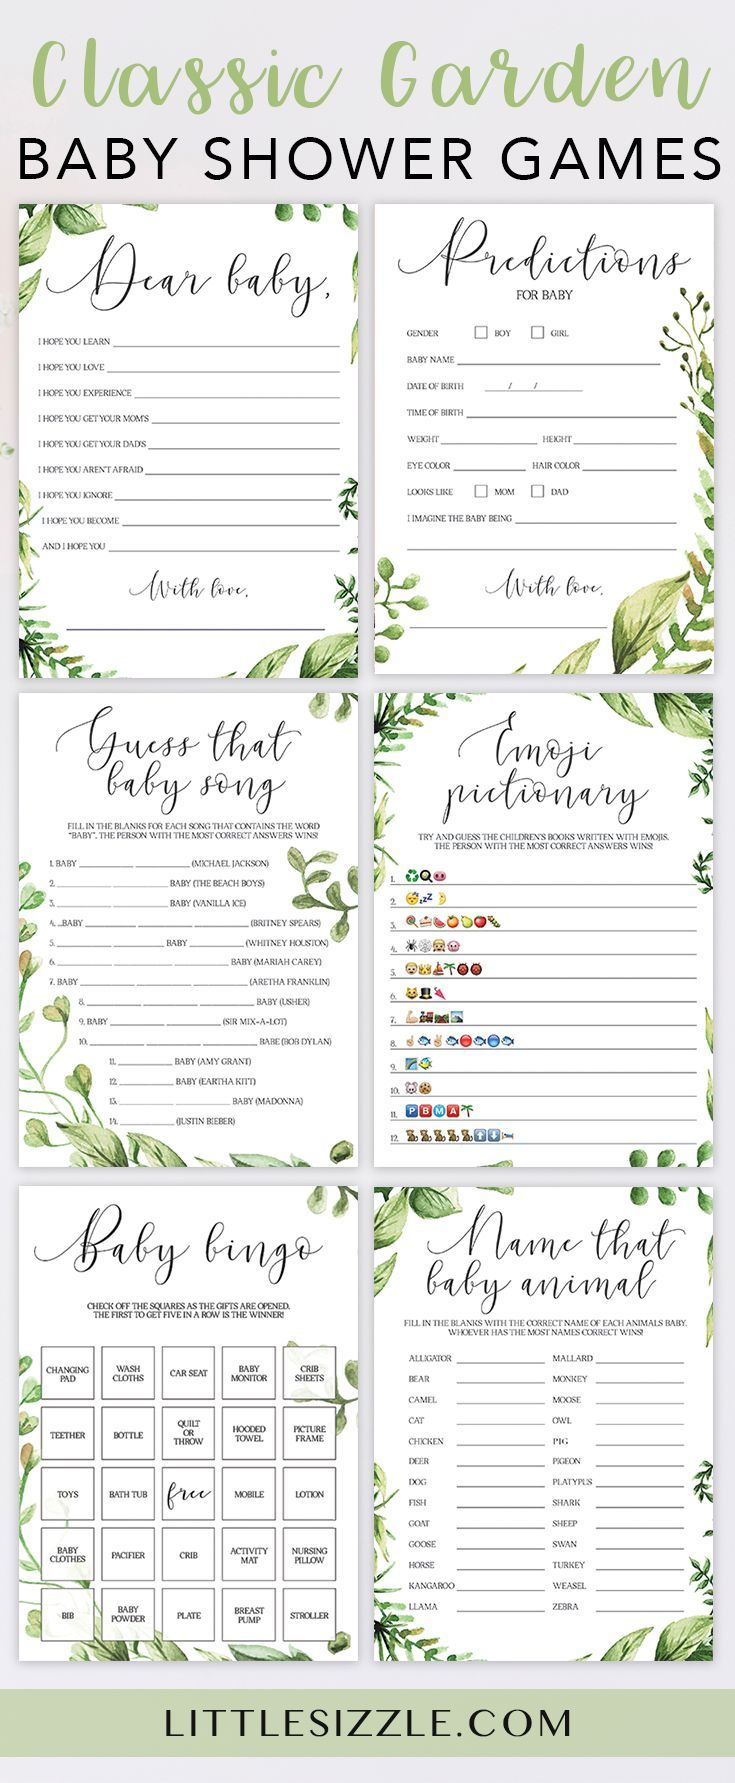 Printable garden baby shower games bundle with green leaves by LittleSizzle. Cli...